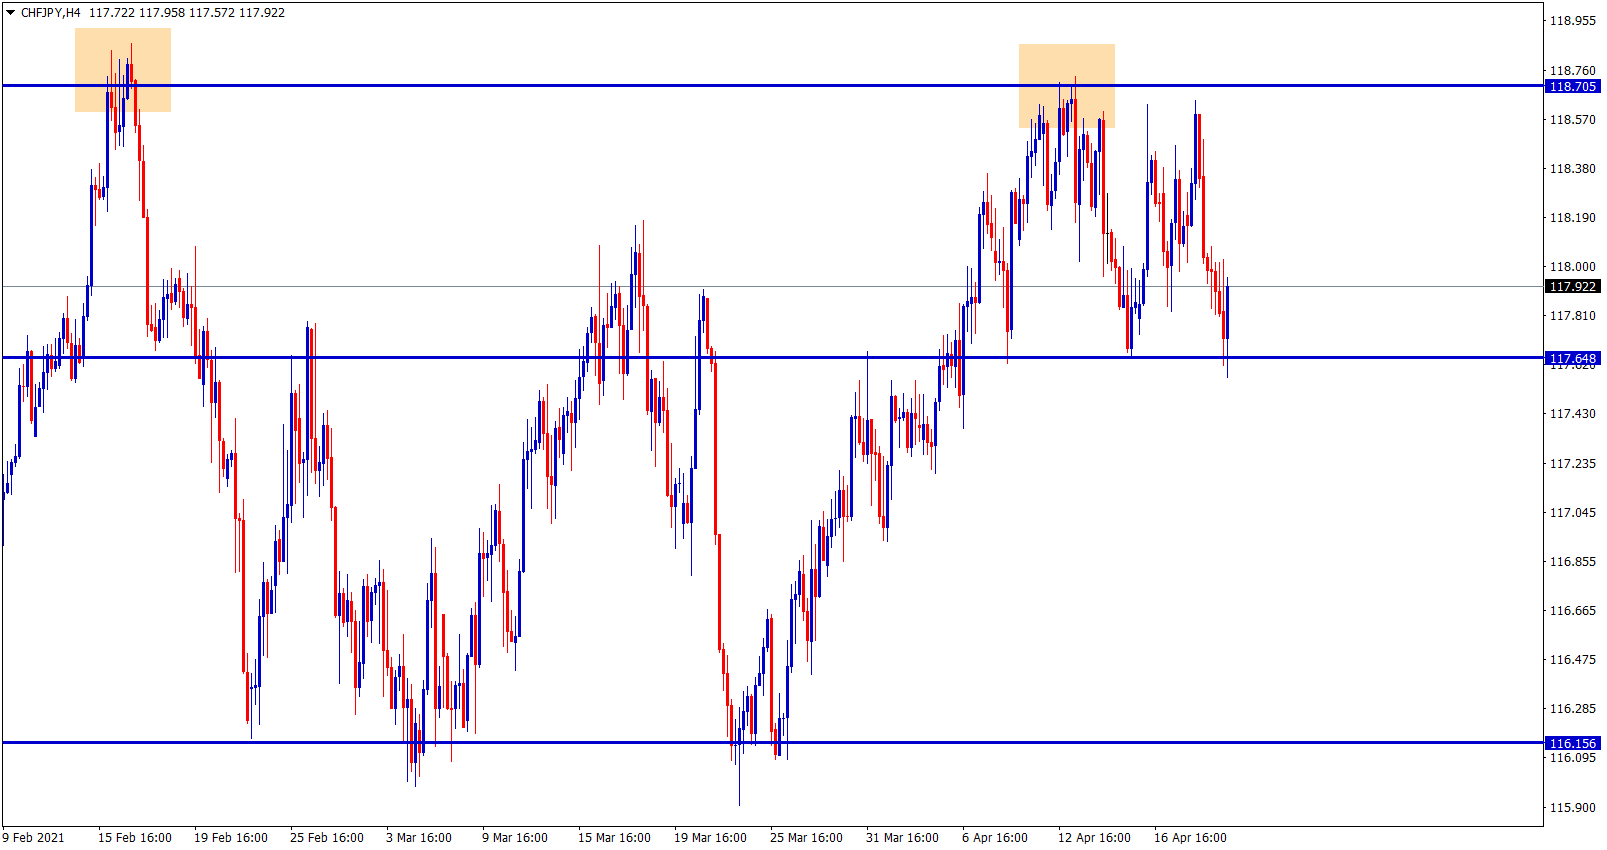 CHFJPY is moving between the resistance and support levels